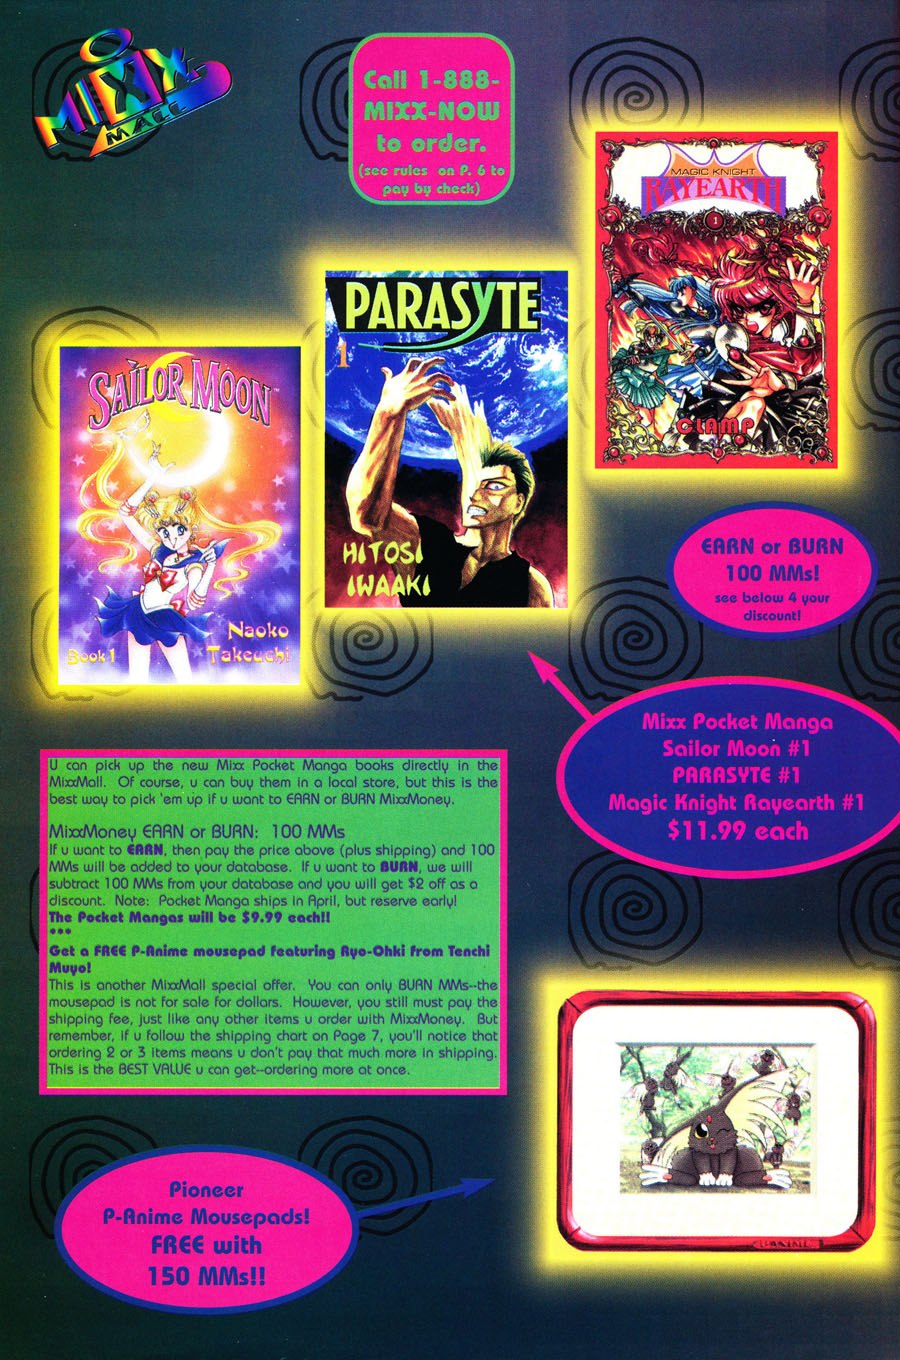 mixx-pocket-manga-sailor-moon-parasyte-rayearth